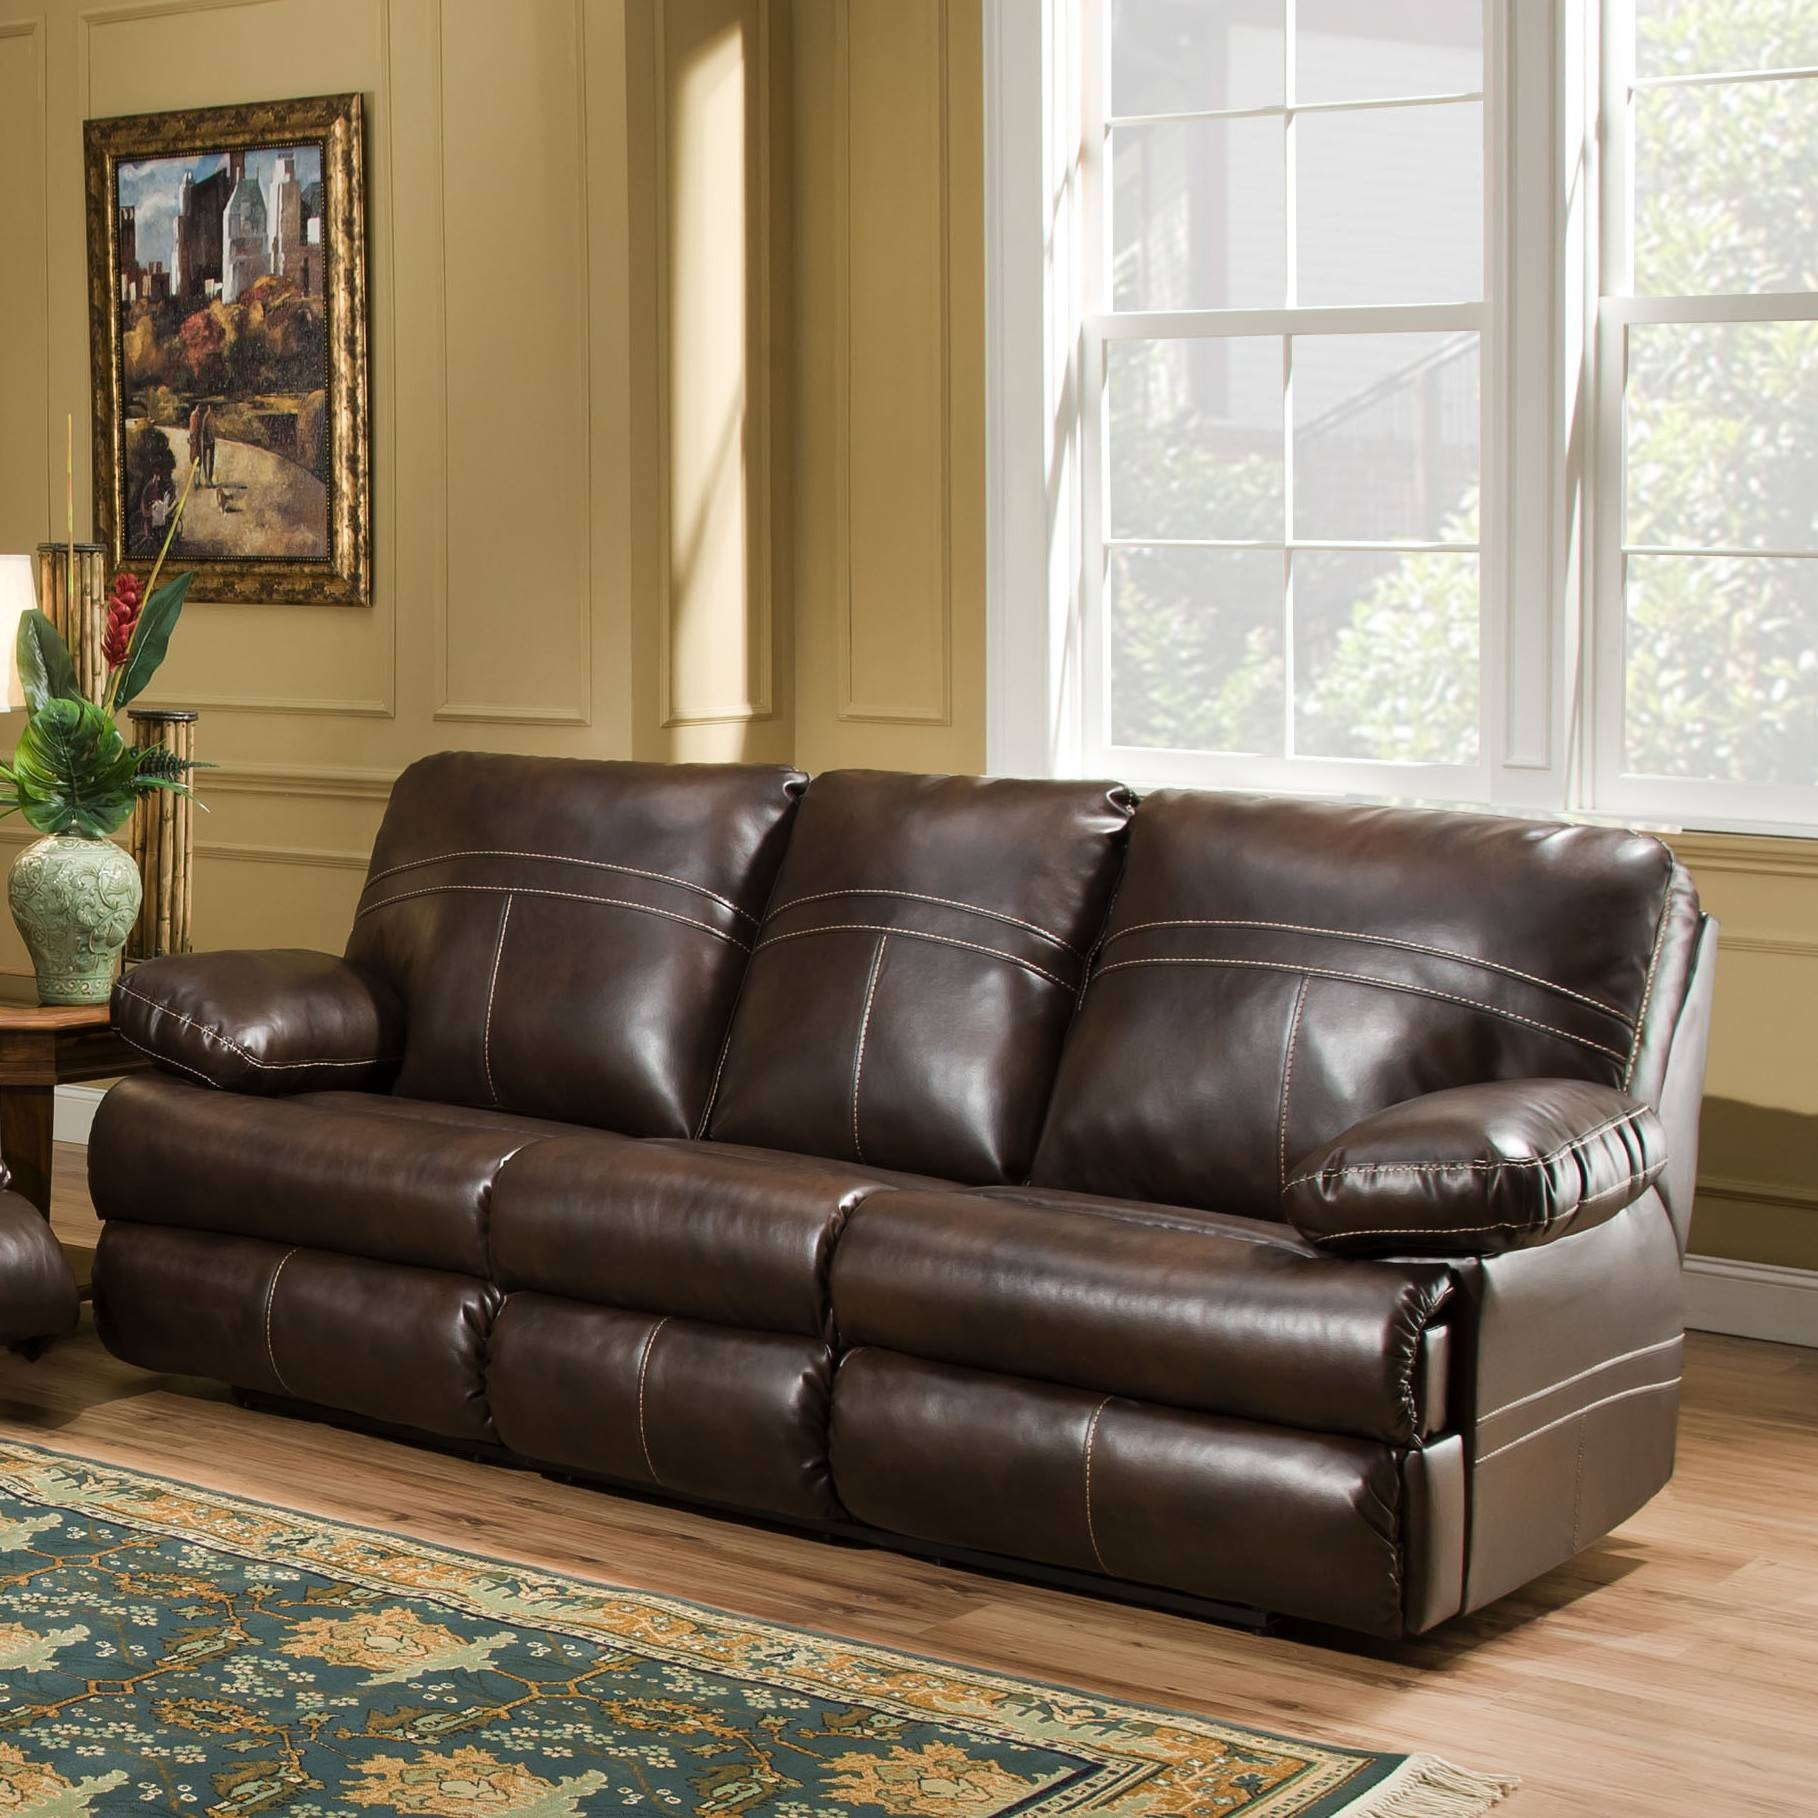 Furniture: Simmons Sectional For Comfortable Seating — Threestems For Simmons Sofa Beds (View 4 of 15)